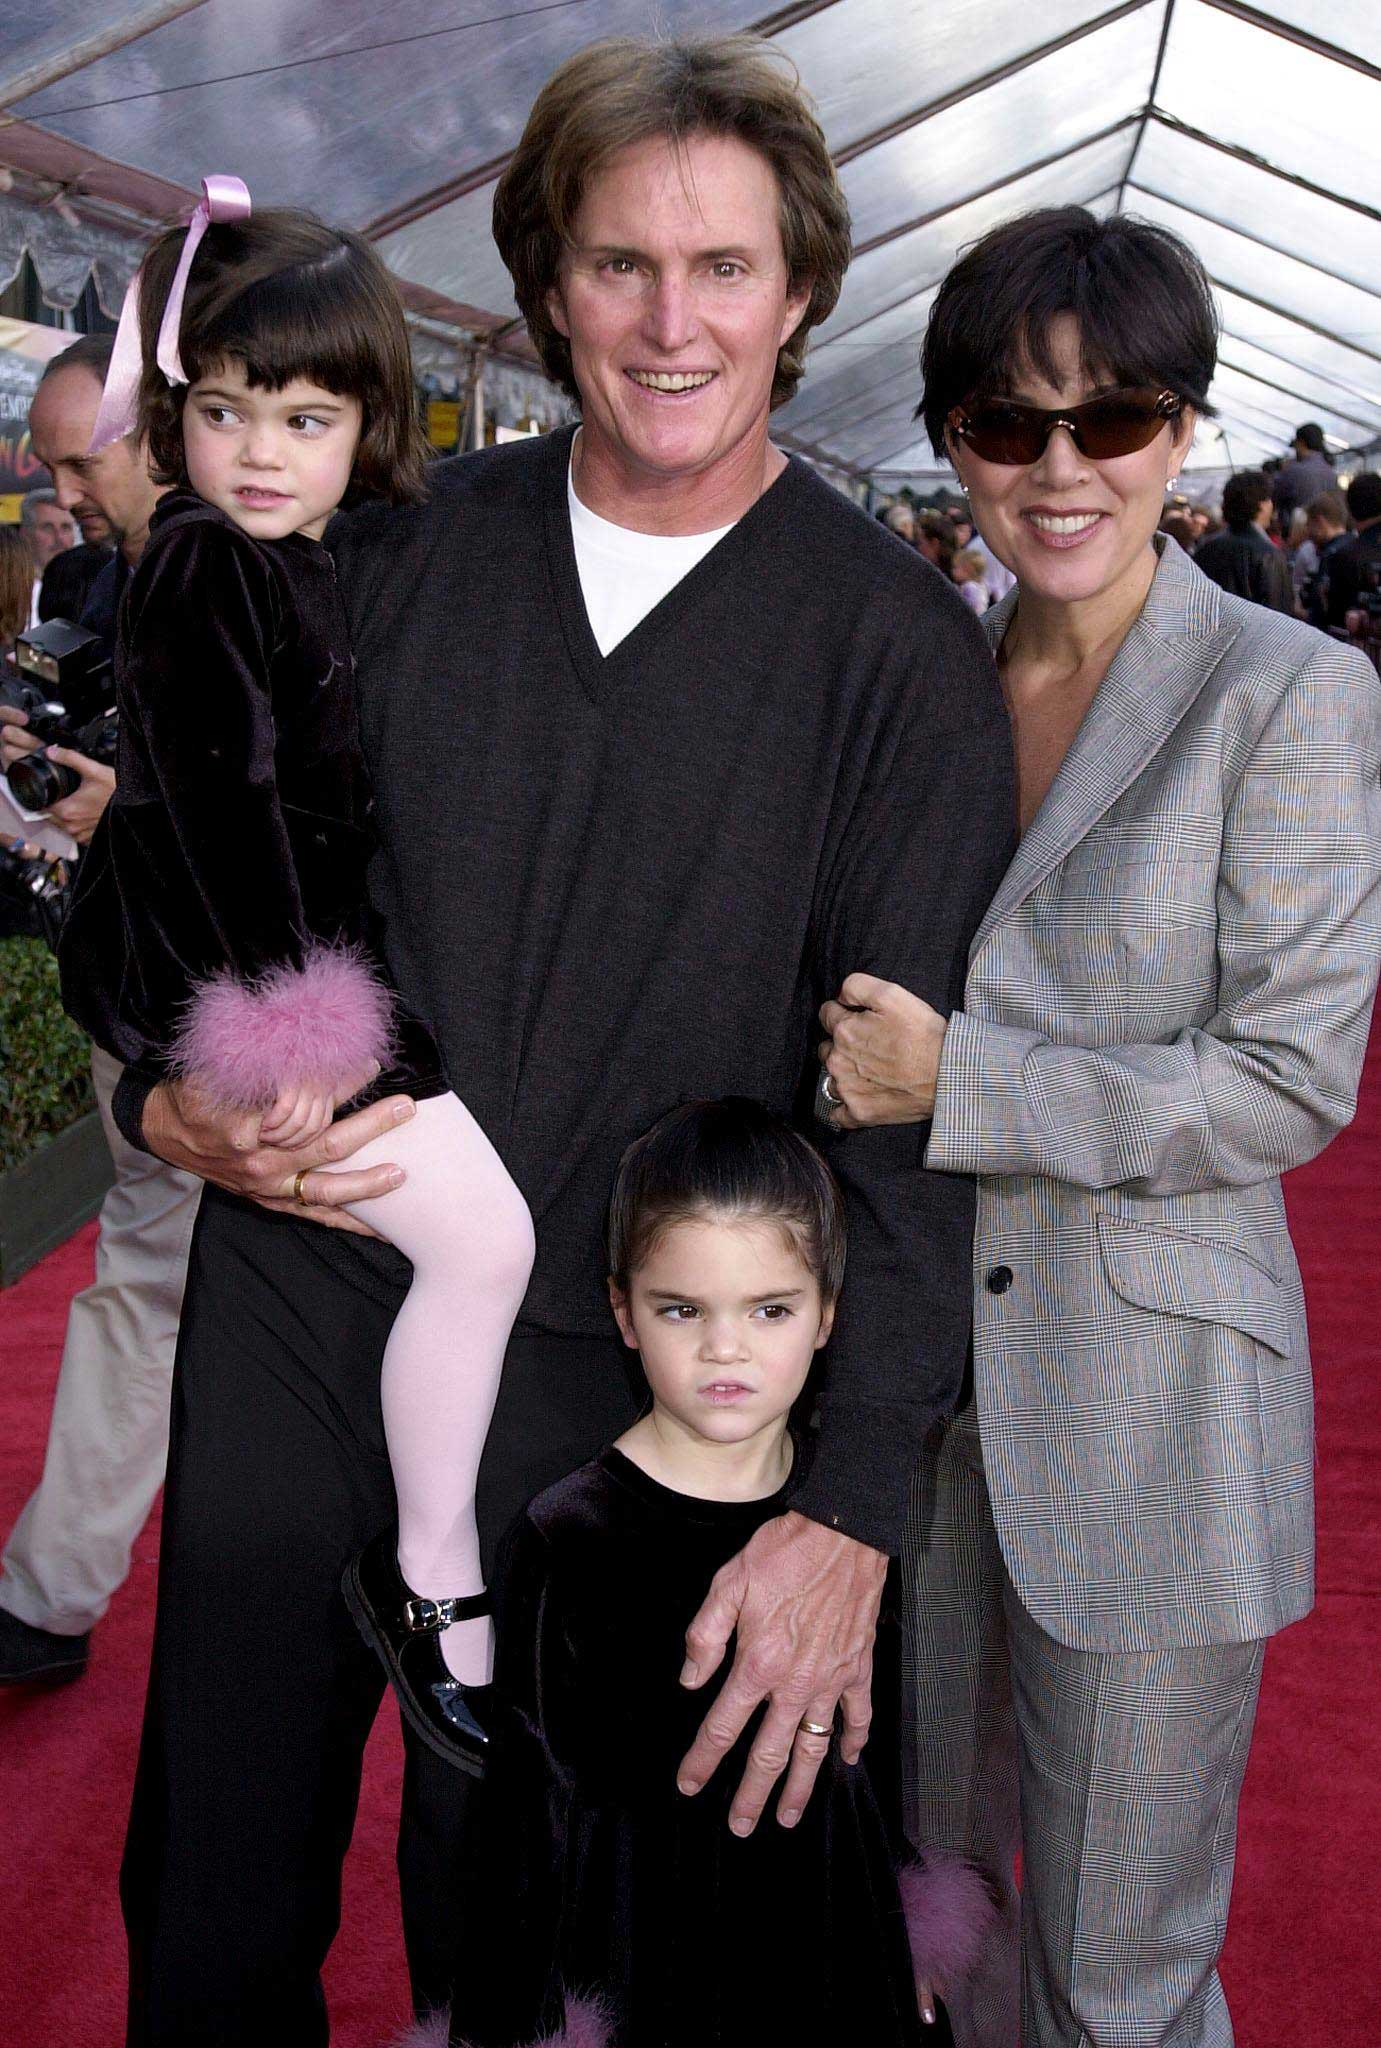 "Kylie Jenner was born two years later in 1997. The girls can be seen here on the red carpet in 2000, long before they covered magazines and appeared on TIME's <a href=""http://time.com/3486048/most-influential-teens-2014/"">Most Influential Teens</a> list."